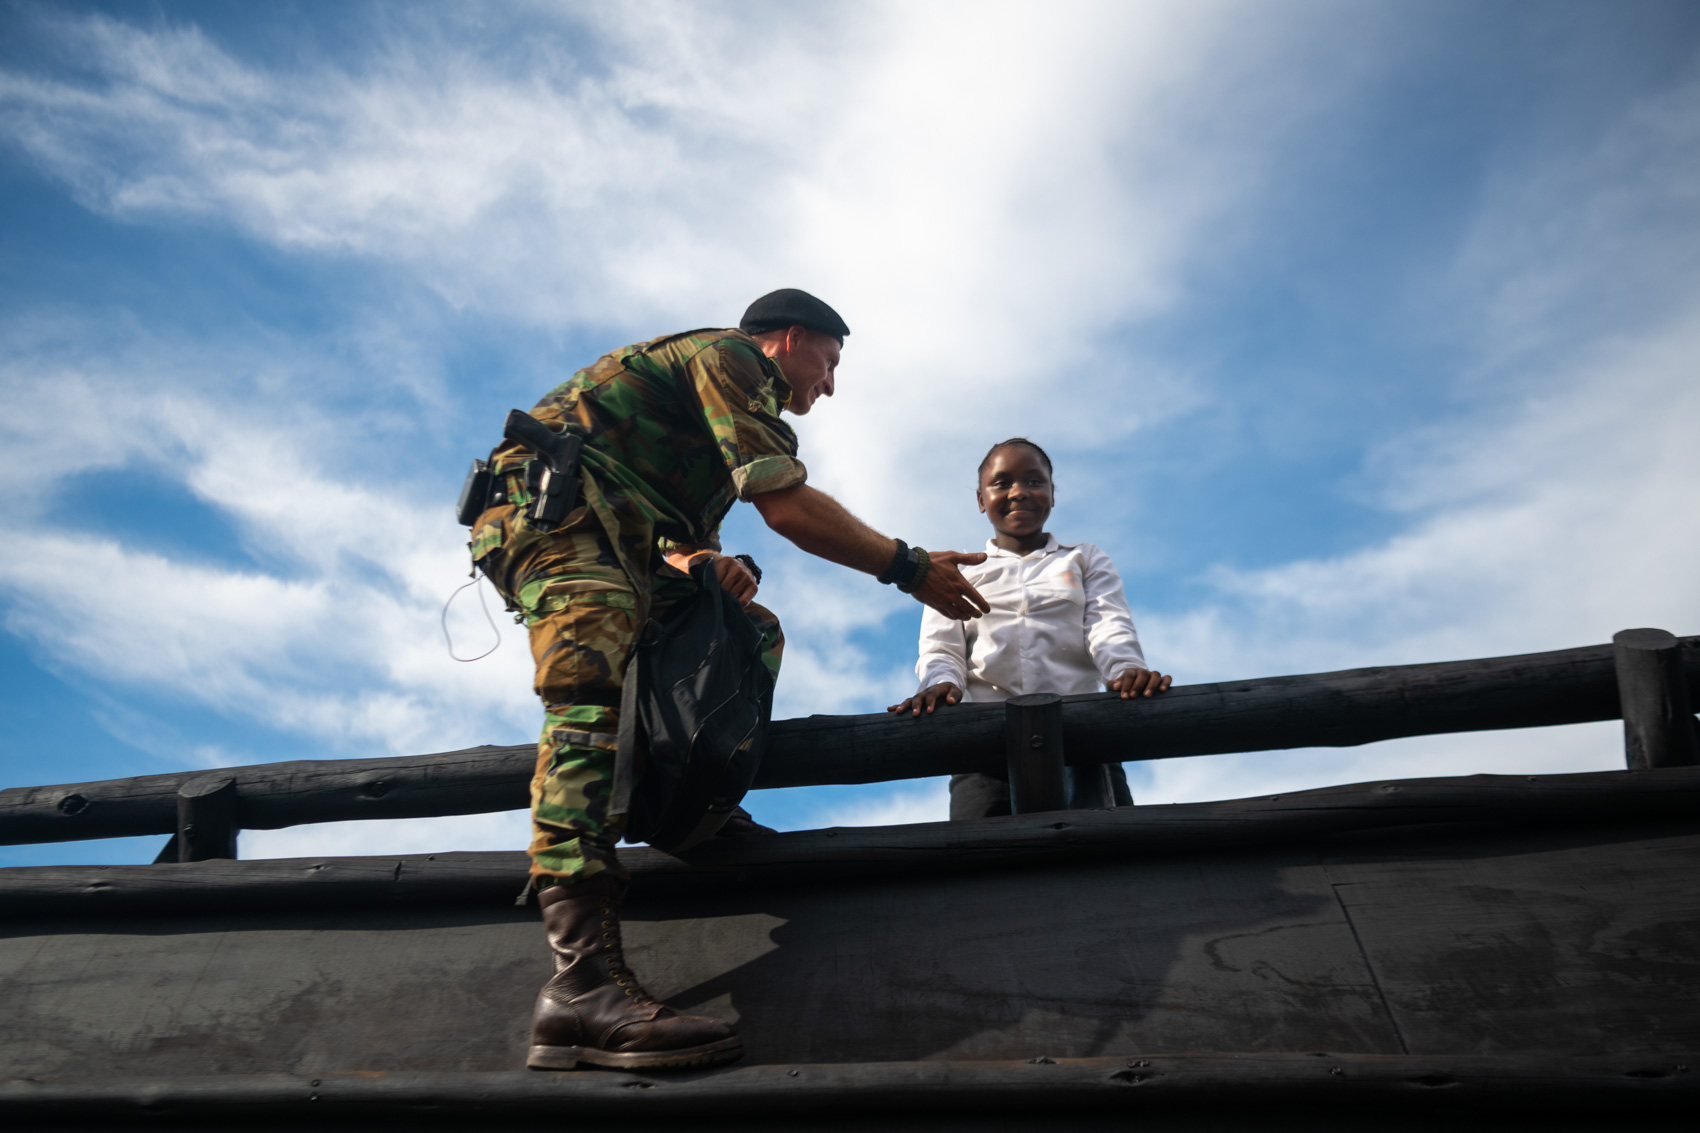 A Protrack Anti-Poaching Unit instructor helping a school girl over an obstacle